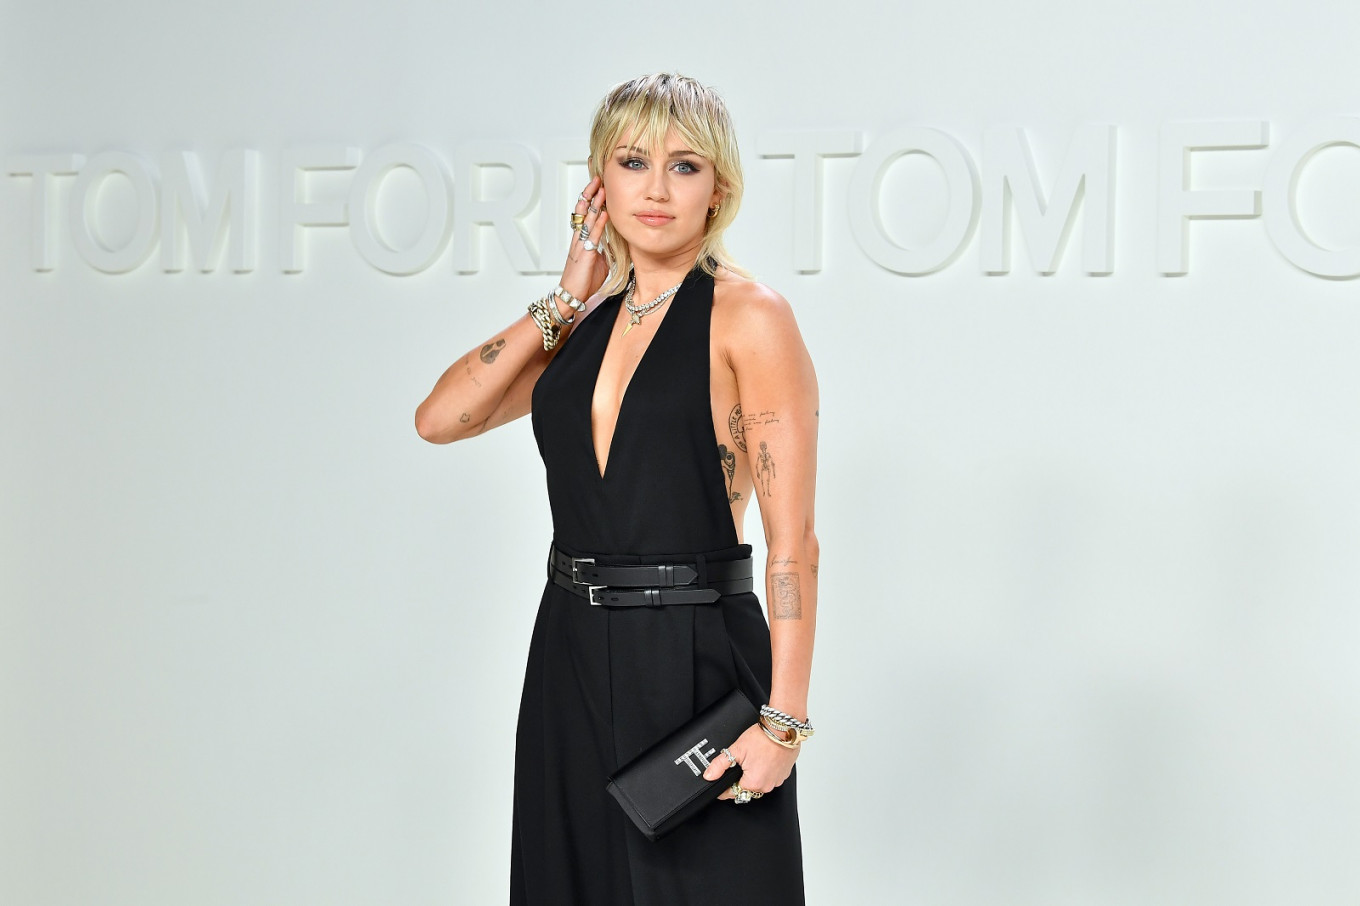 Miley Cyrus Cody Simpson Have Broken Up Report Entertainment The Jakarta Post